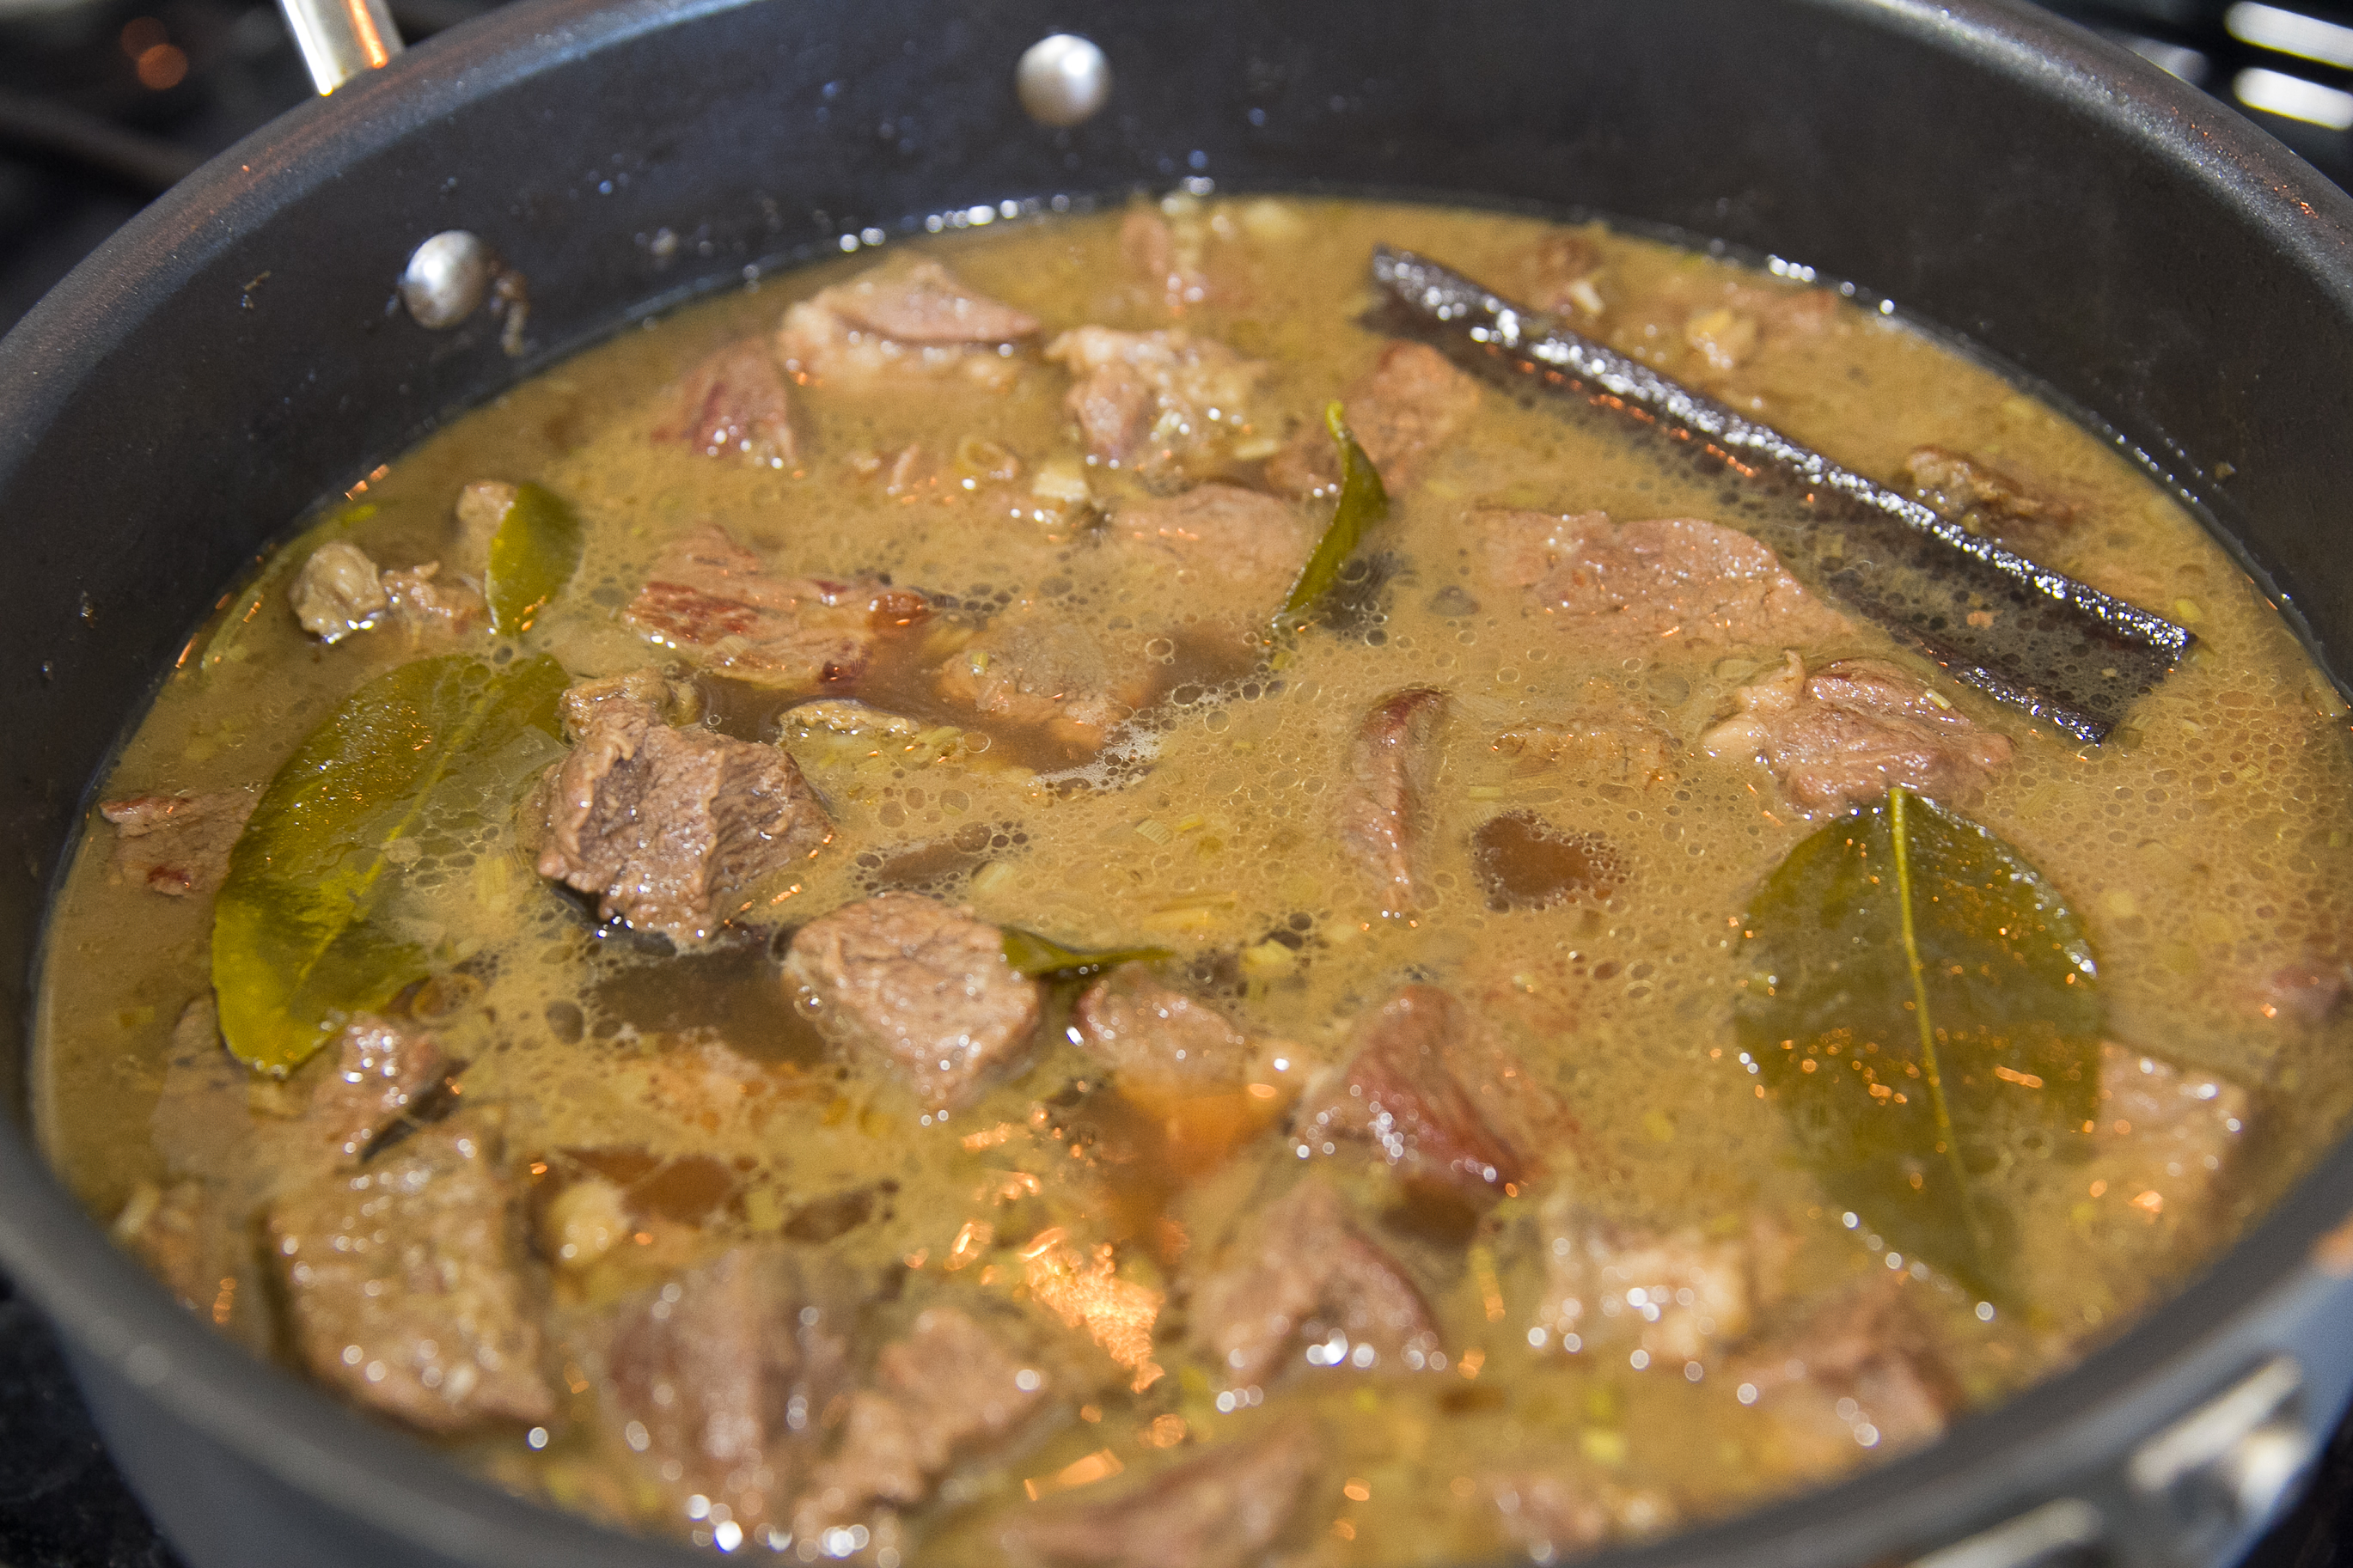 thai-beef-stew-with-noodles-061015-1.jpg